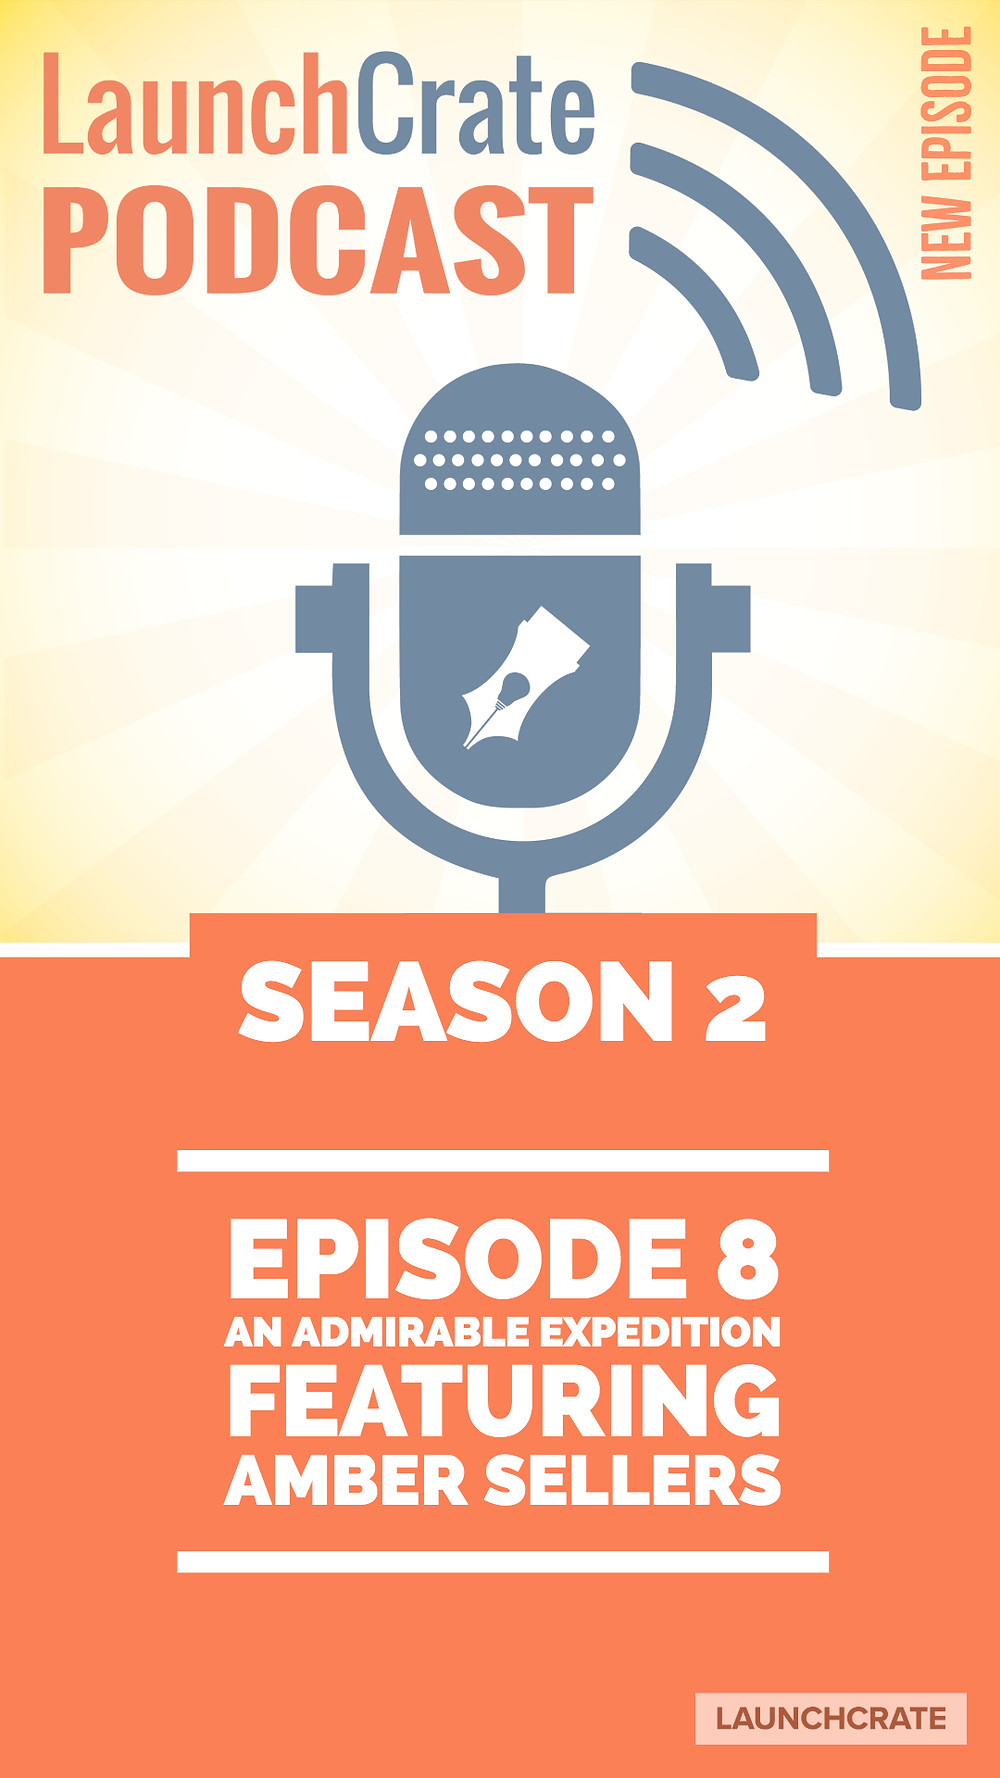 Podcast Season 2, Episode 8, with Amber Sellers